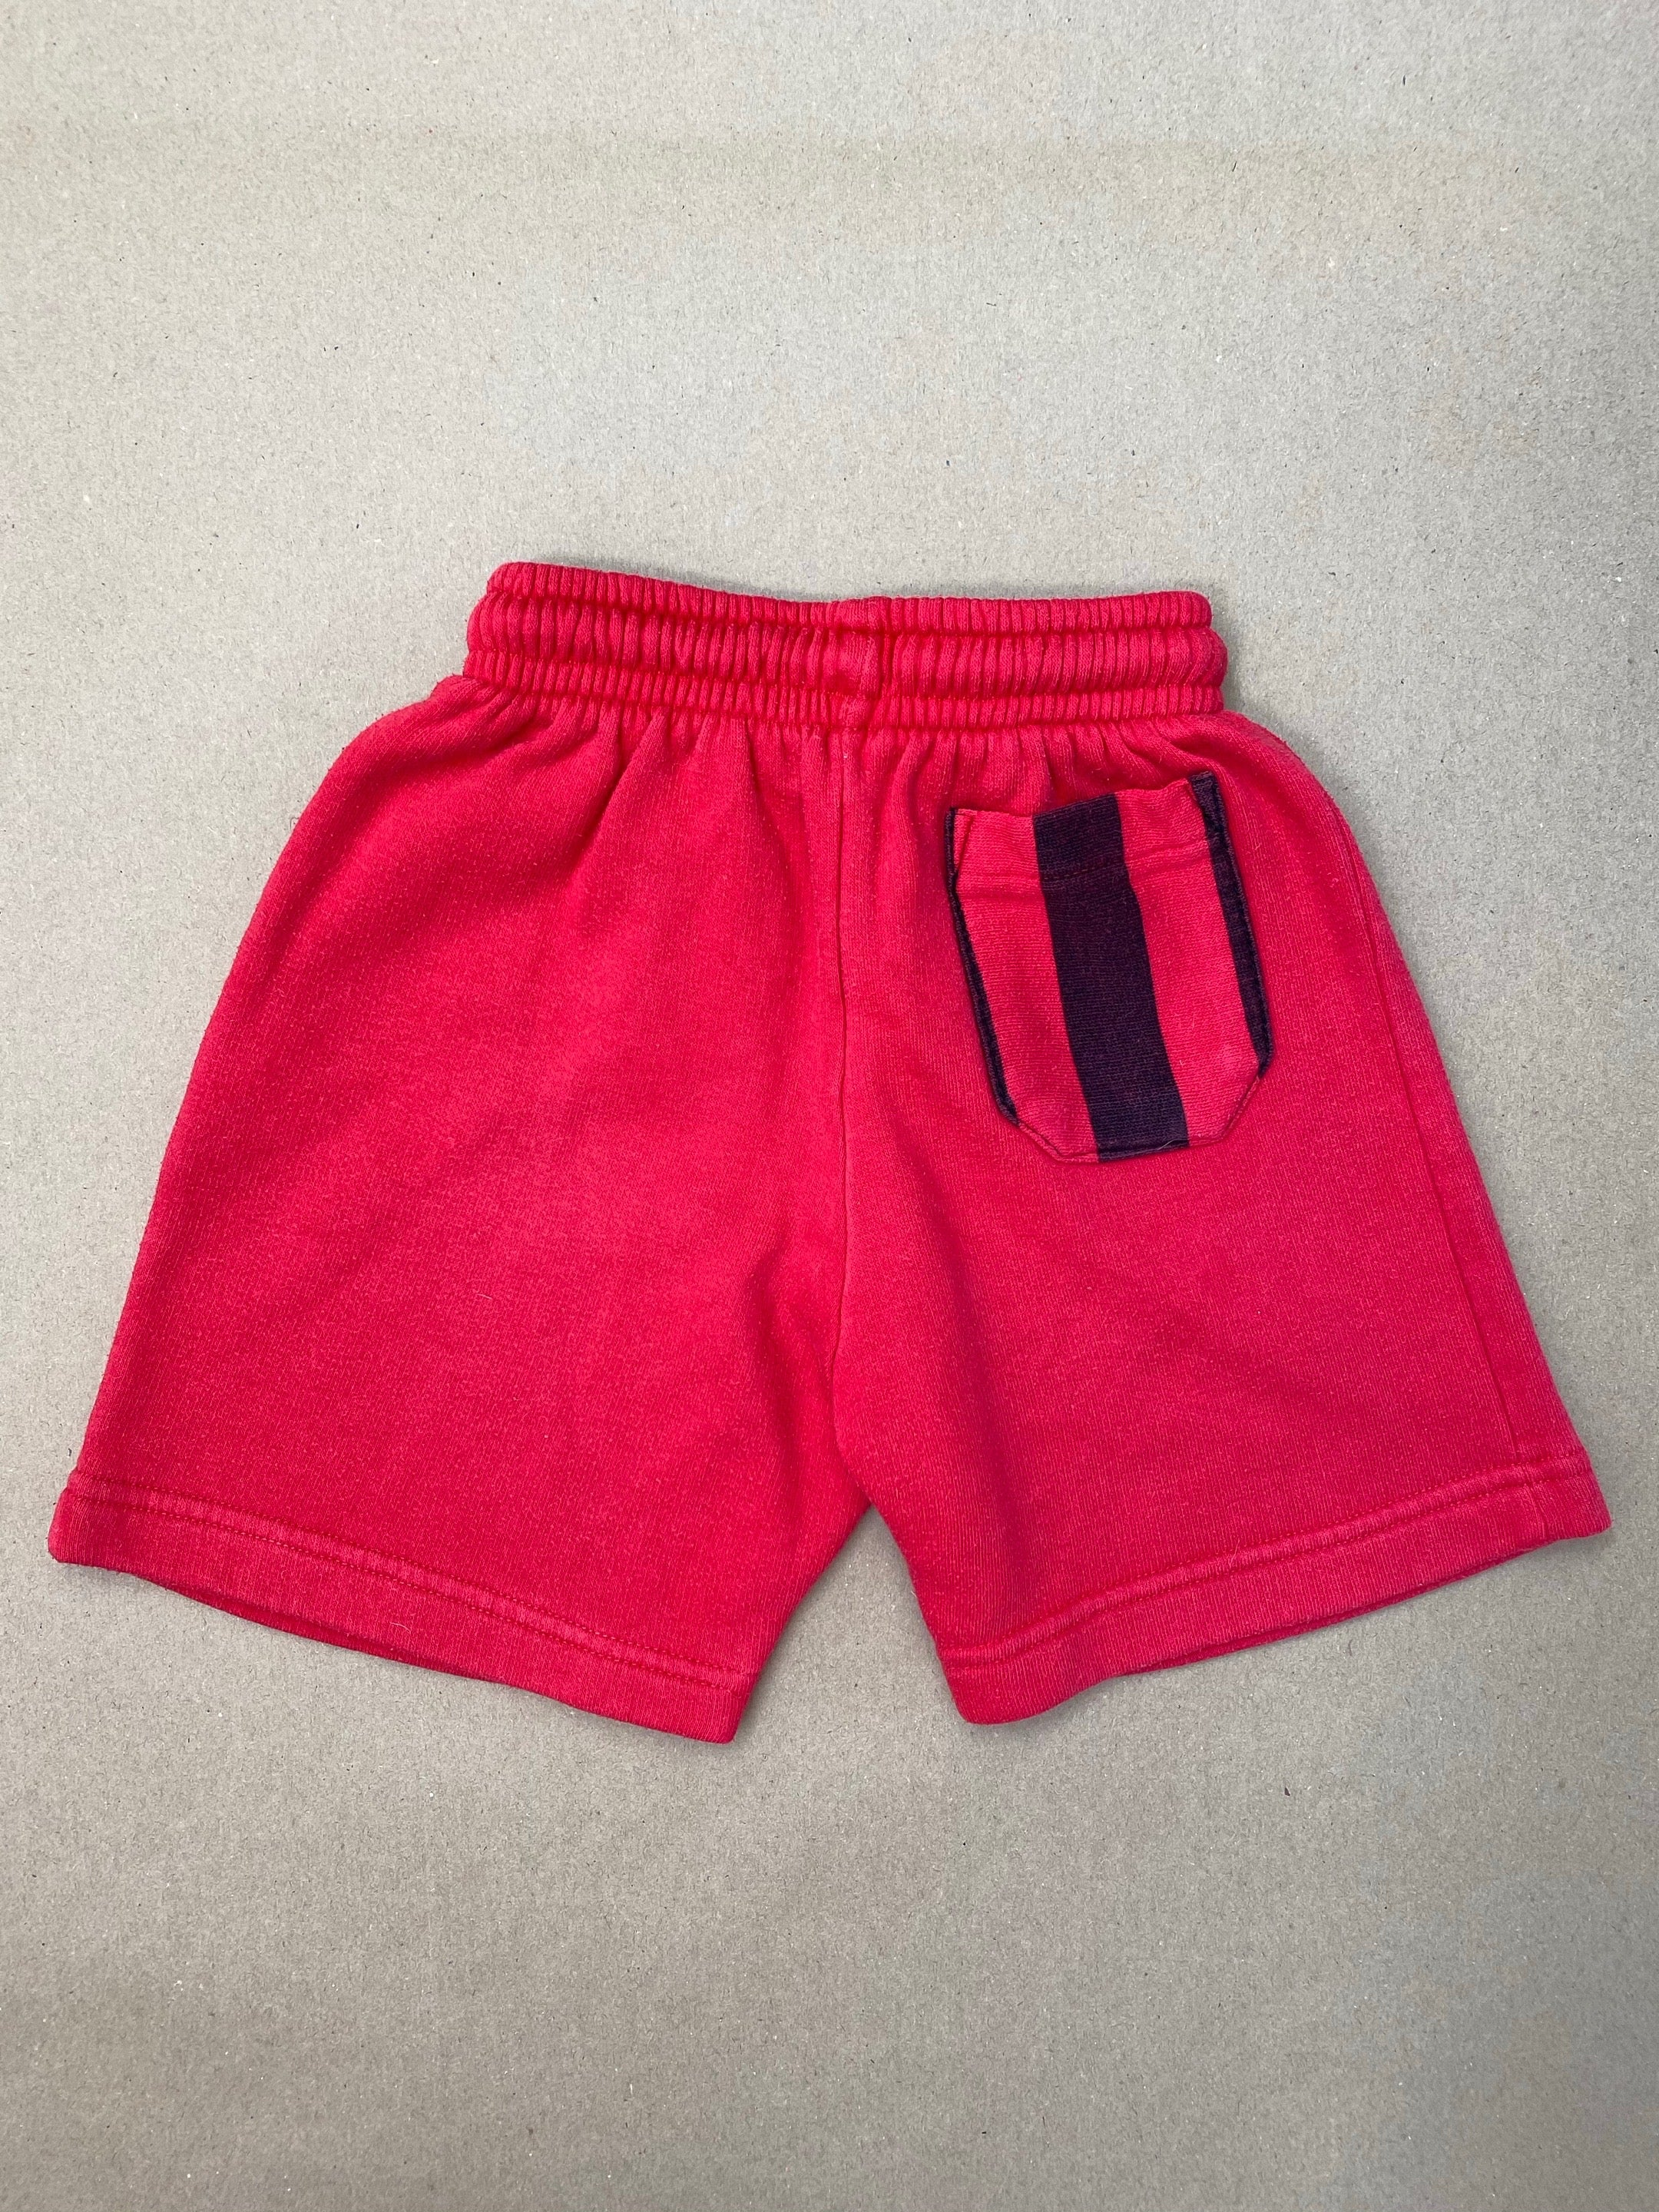 Vintage Dennis the menace shorts age 4 years